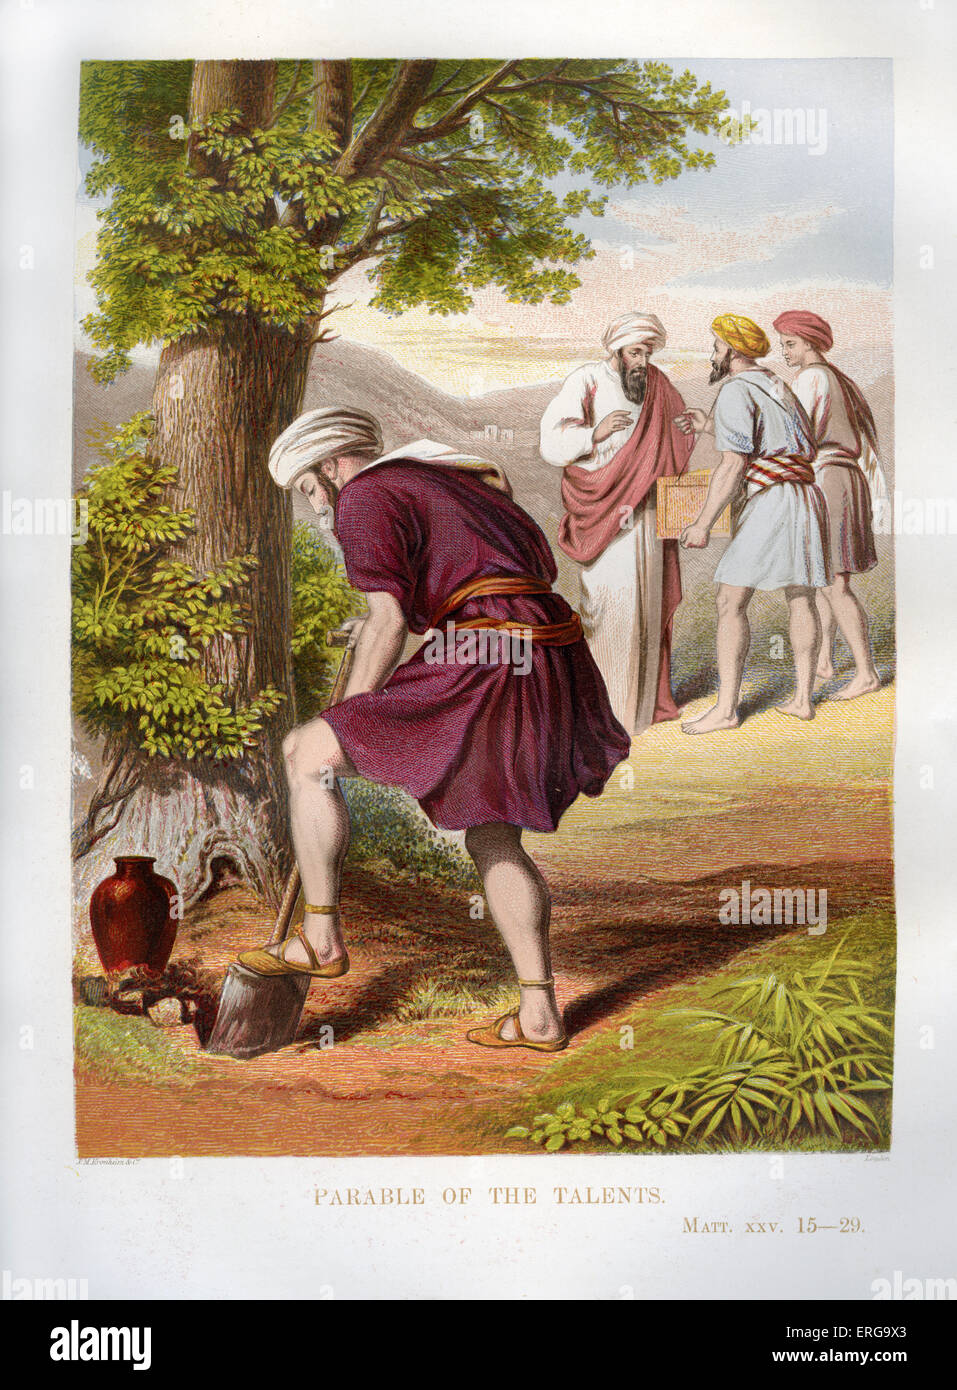 Parable of the Talents - told by Jesus. Illustration to Matthew 25. 15 -29. A master is leaving his home to travel, - Stock Image